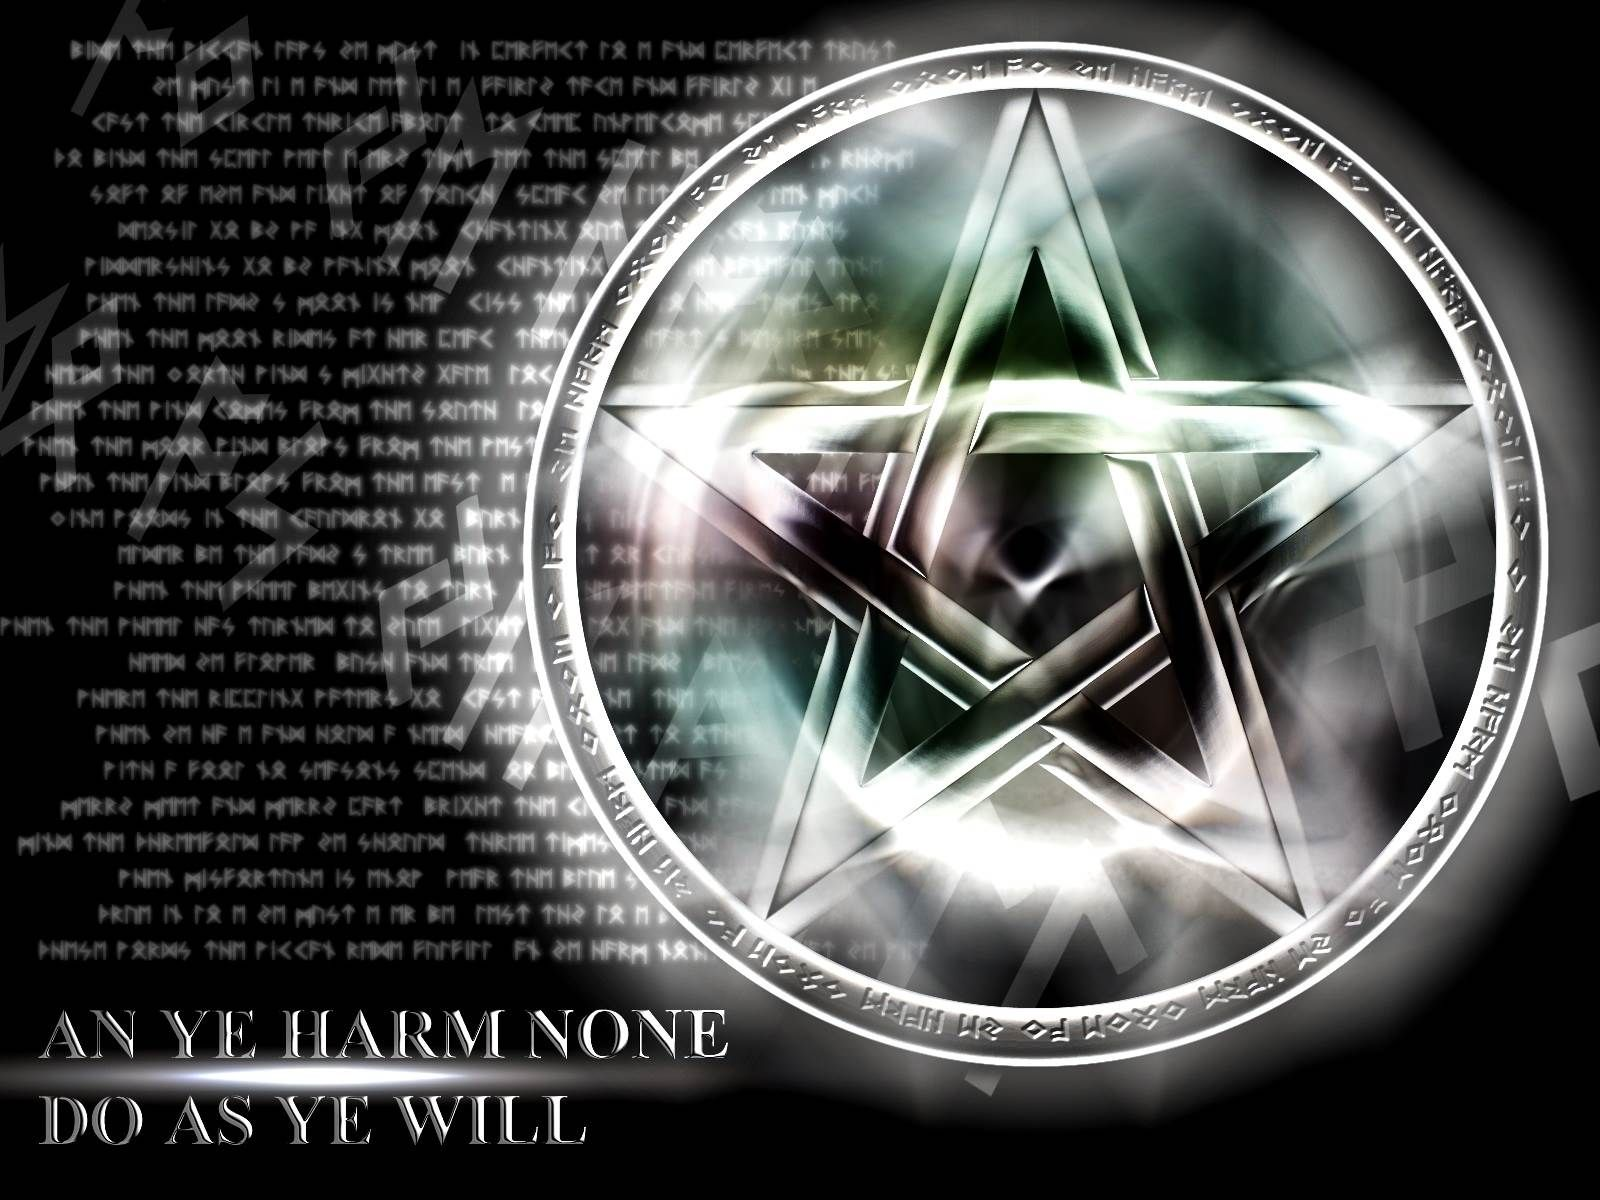 Wiccan pentacle wallpaper 1024768 wiccan backgrounds adorable wiccan pentacle wallpaper 1024768 wiccan backgrounds adorable wallpapers biocorpaavc Images